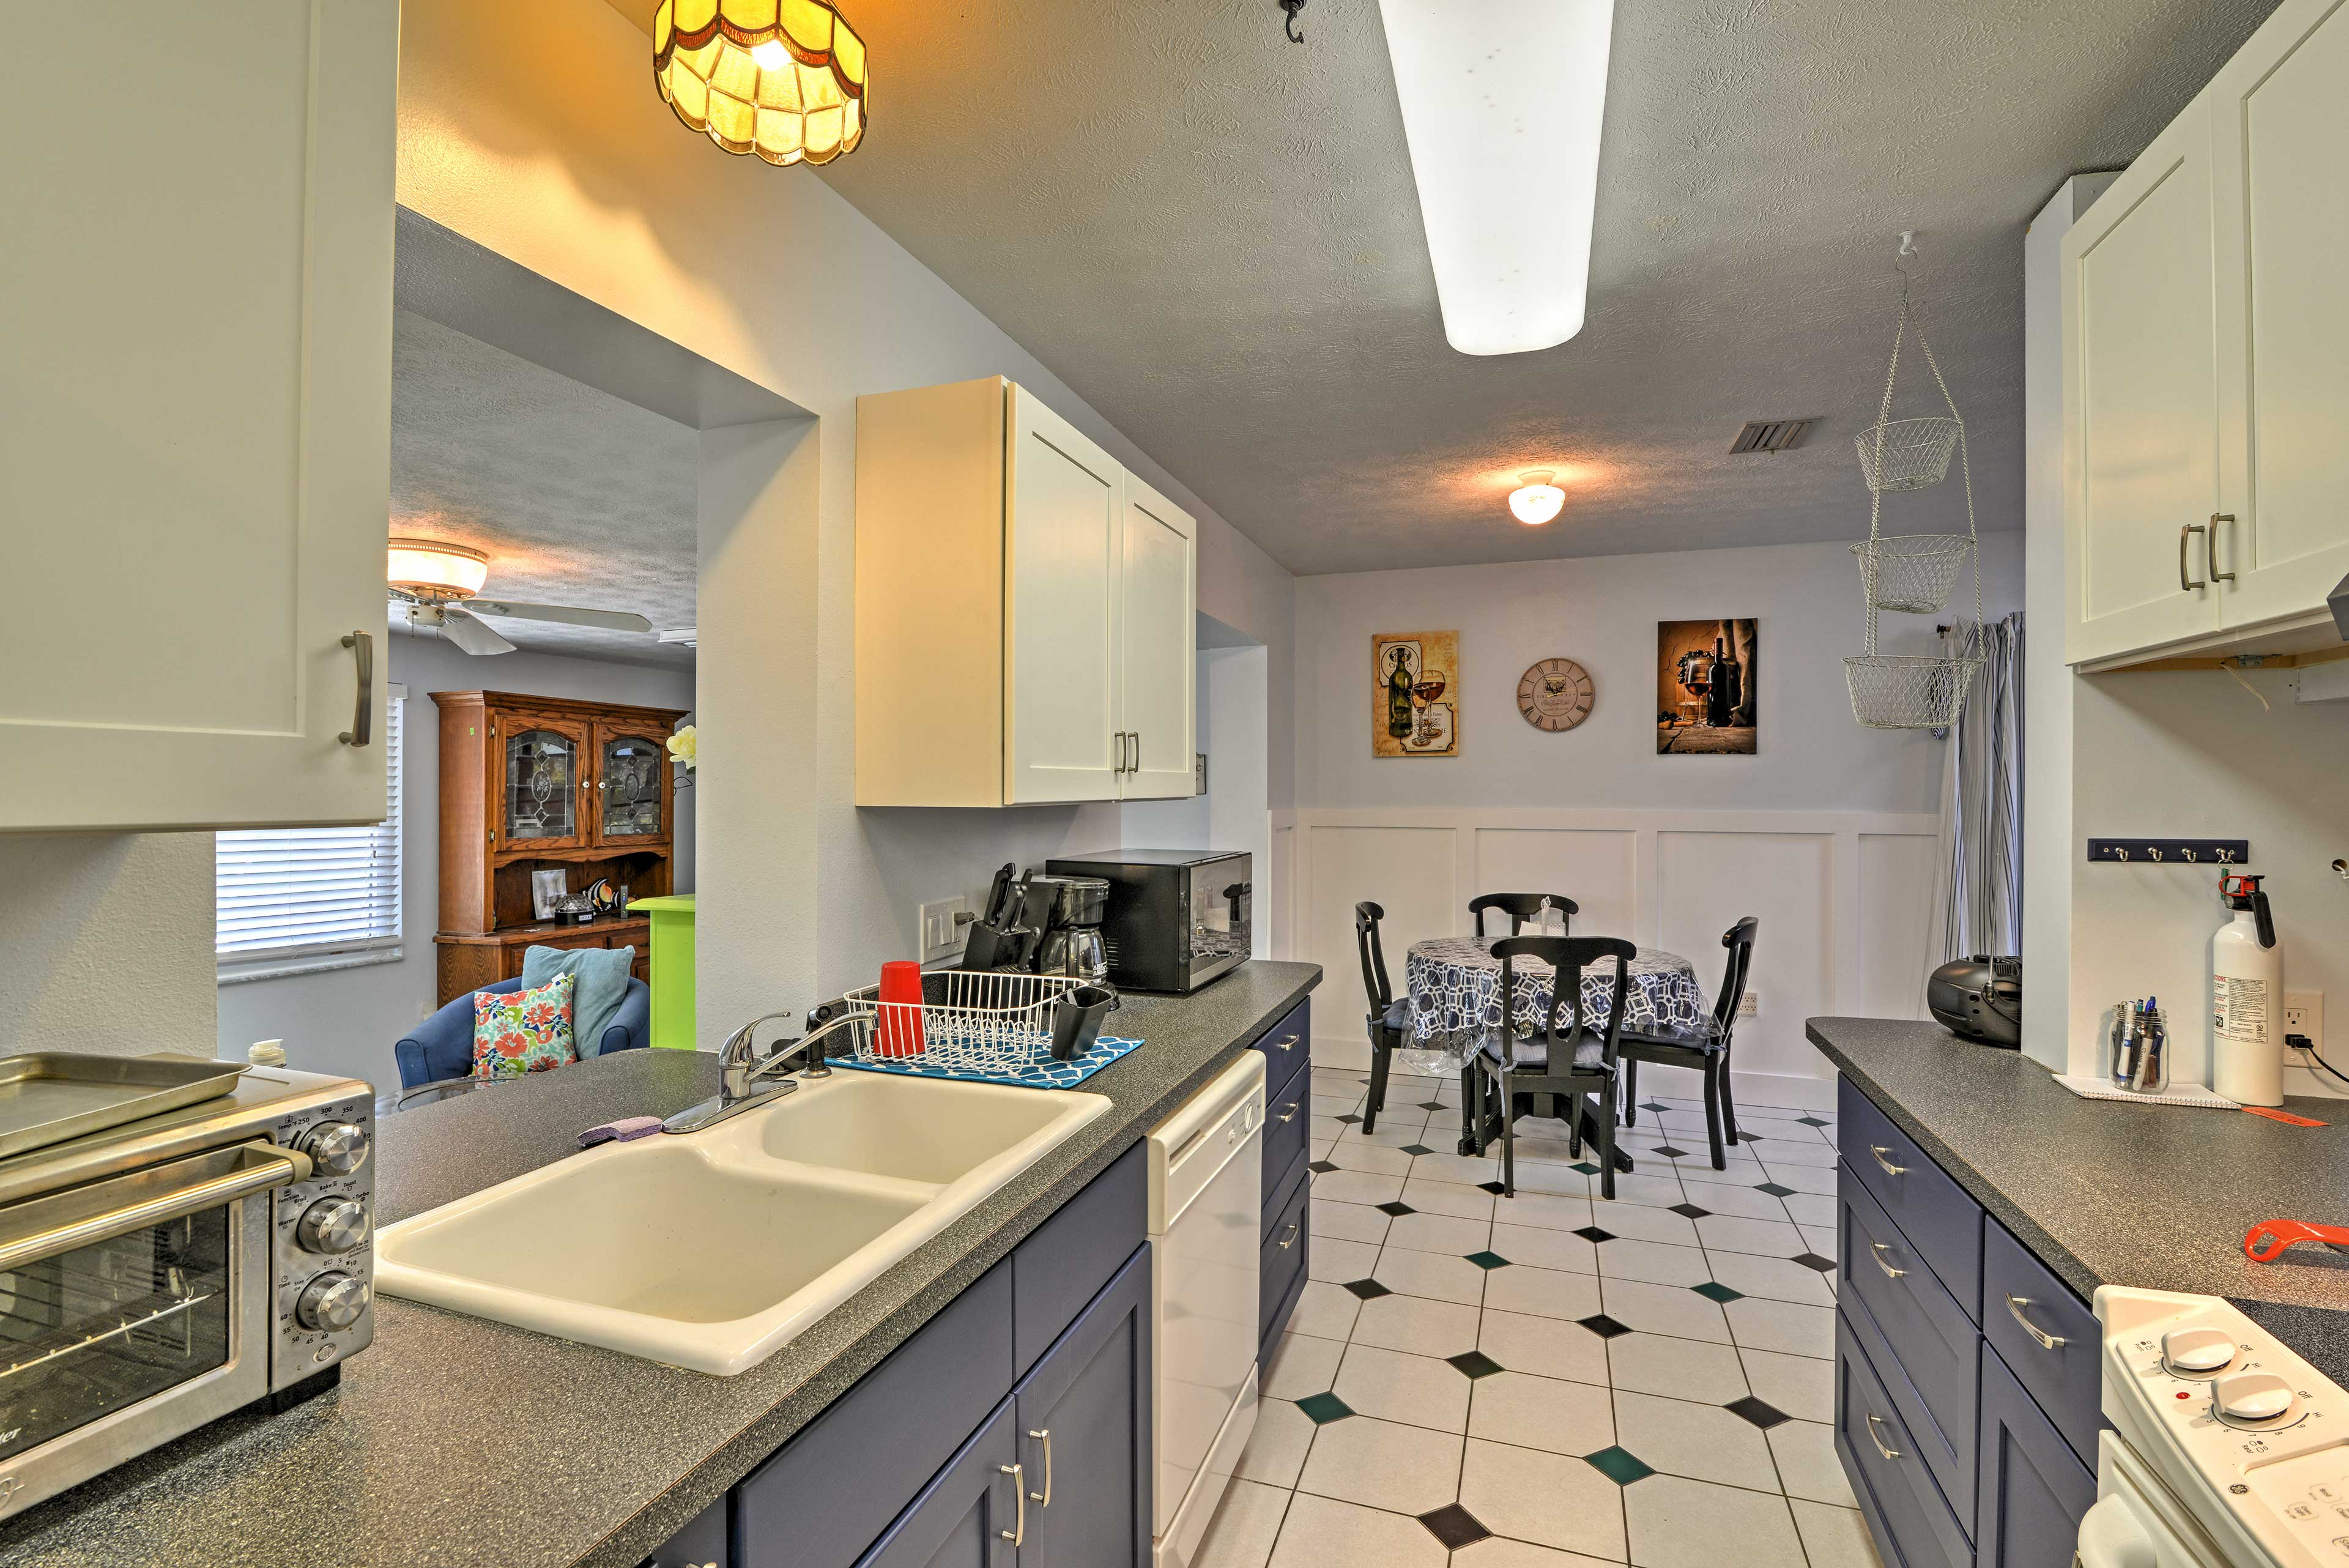 The galley style, full kitchen offers modern appliances and tile floors.